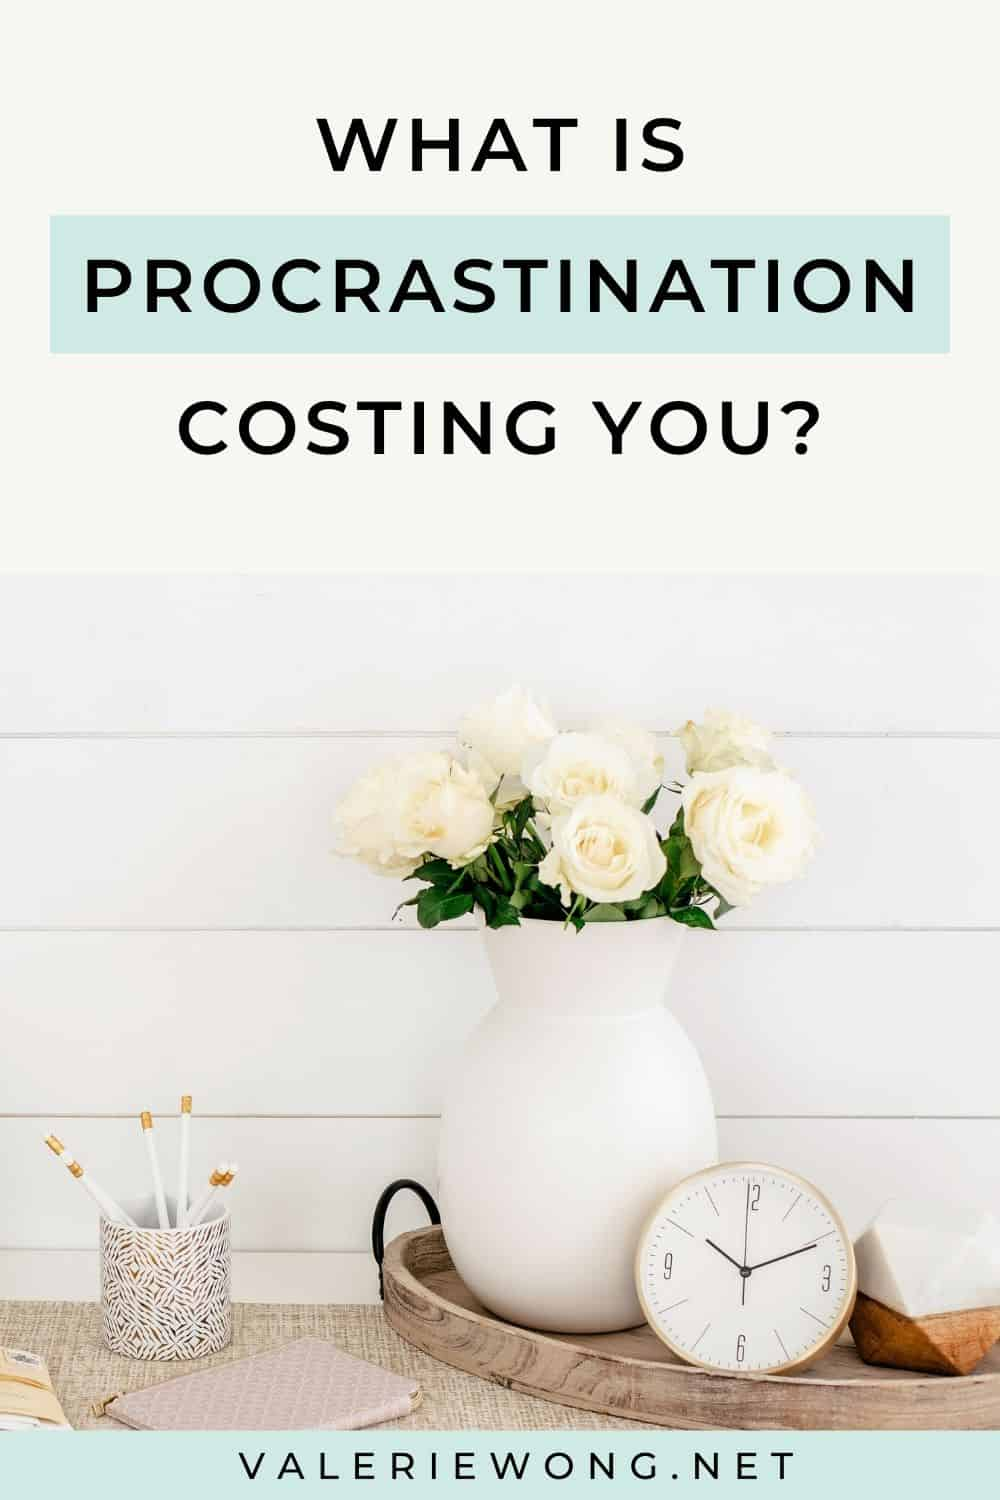 What is procrastination costing you? | If procrastination is stopping you from getting things done, or more importantly, making progress toward your goals and dreams, this post is for you! I'm sharing tips I've recently learned for overcoming procrastination or avoiding it altogether. It's just the motivation you need to stop procrastinating on your life goals (or doing your laundry). | ValerieWong.net via @valeriewonglifecoach